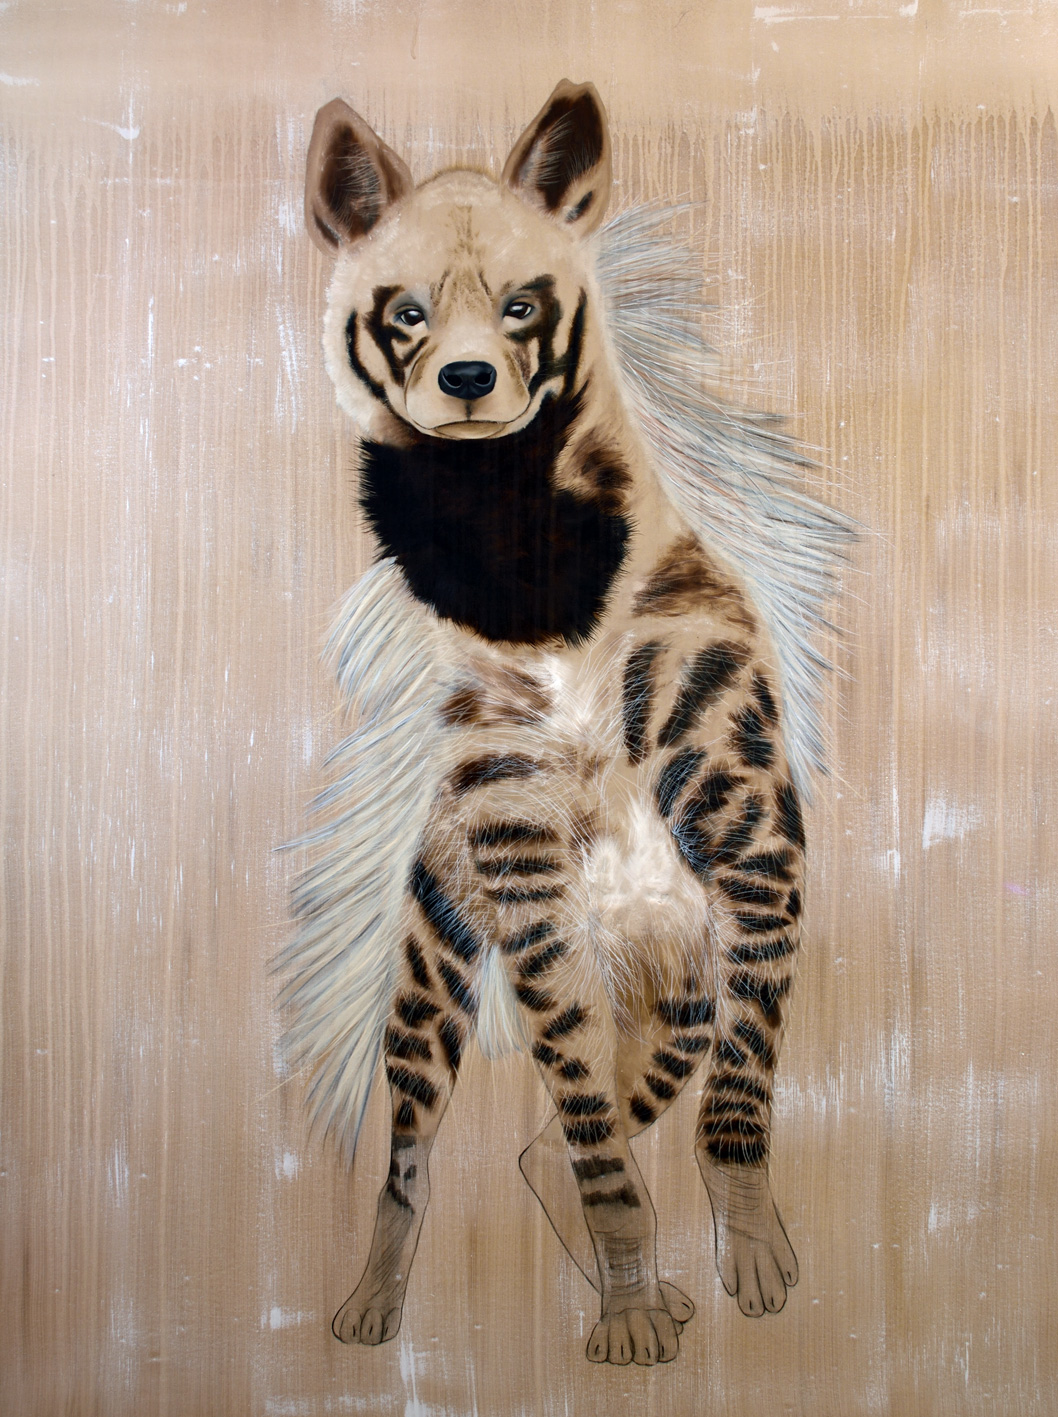 HYAENA hyaena striped-hyena-hyaena Thierry Bisch painter animals painting art decoration hotel design interior luxury nature biodiversity conservation